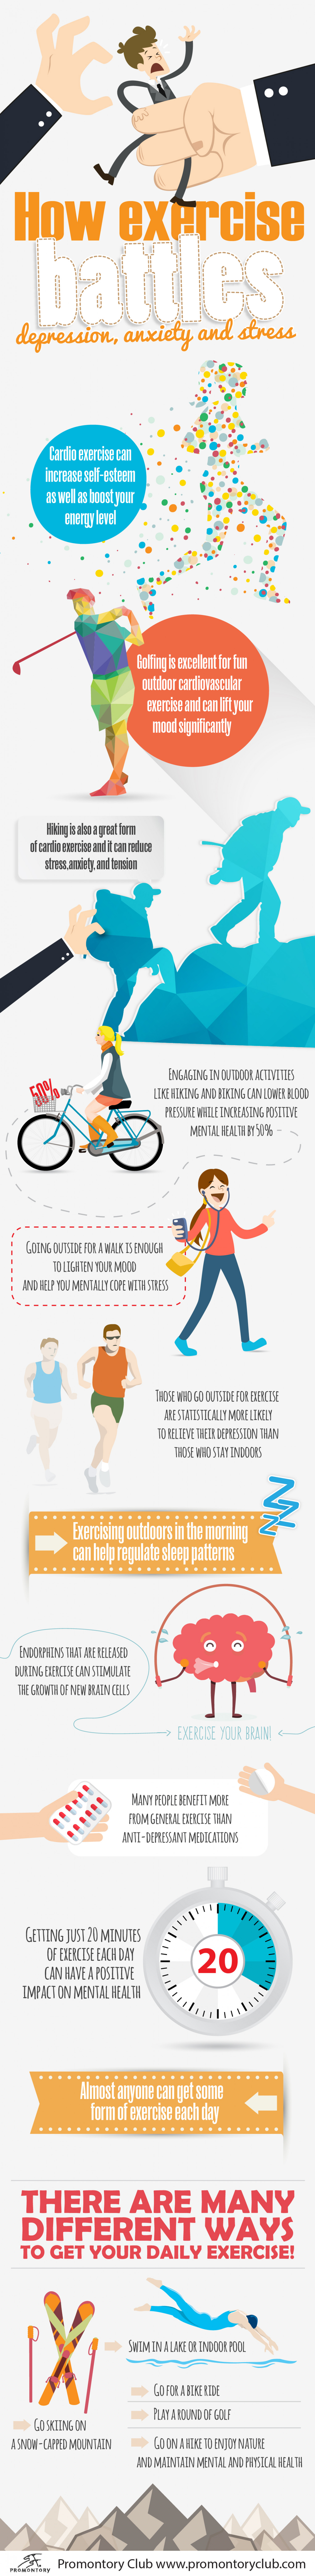 How Exercise Battles Depression, Anxiety and Stress Infographic